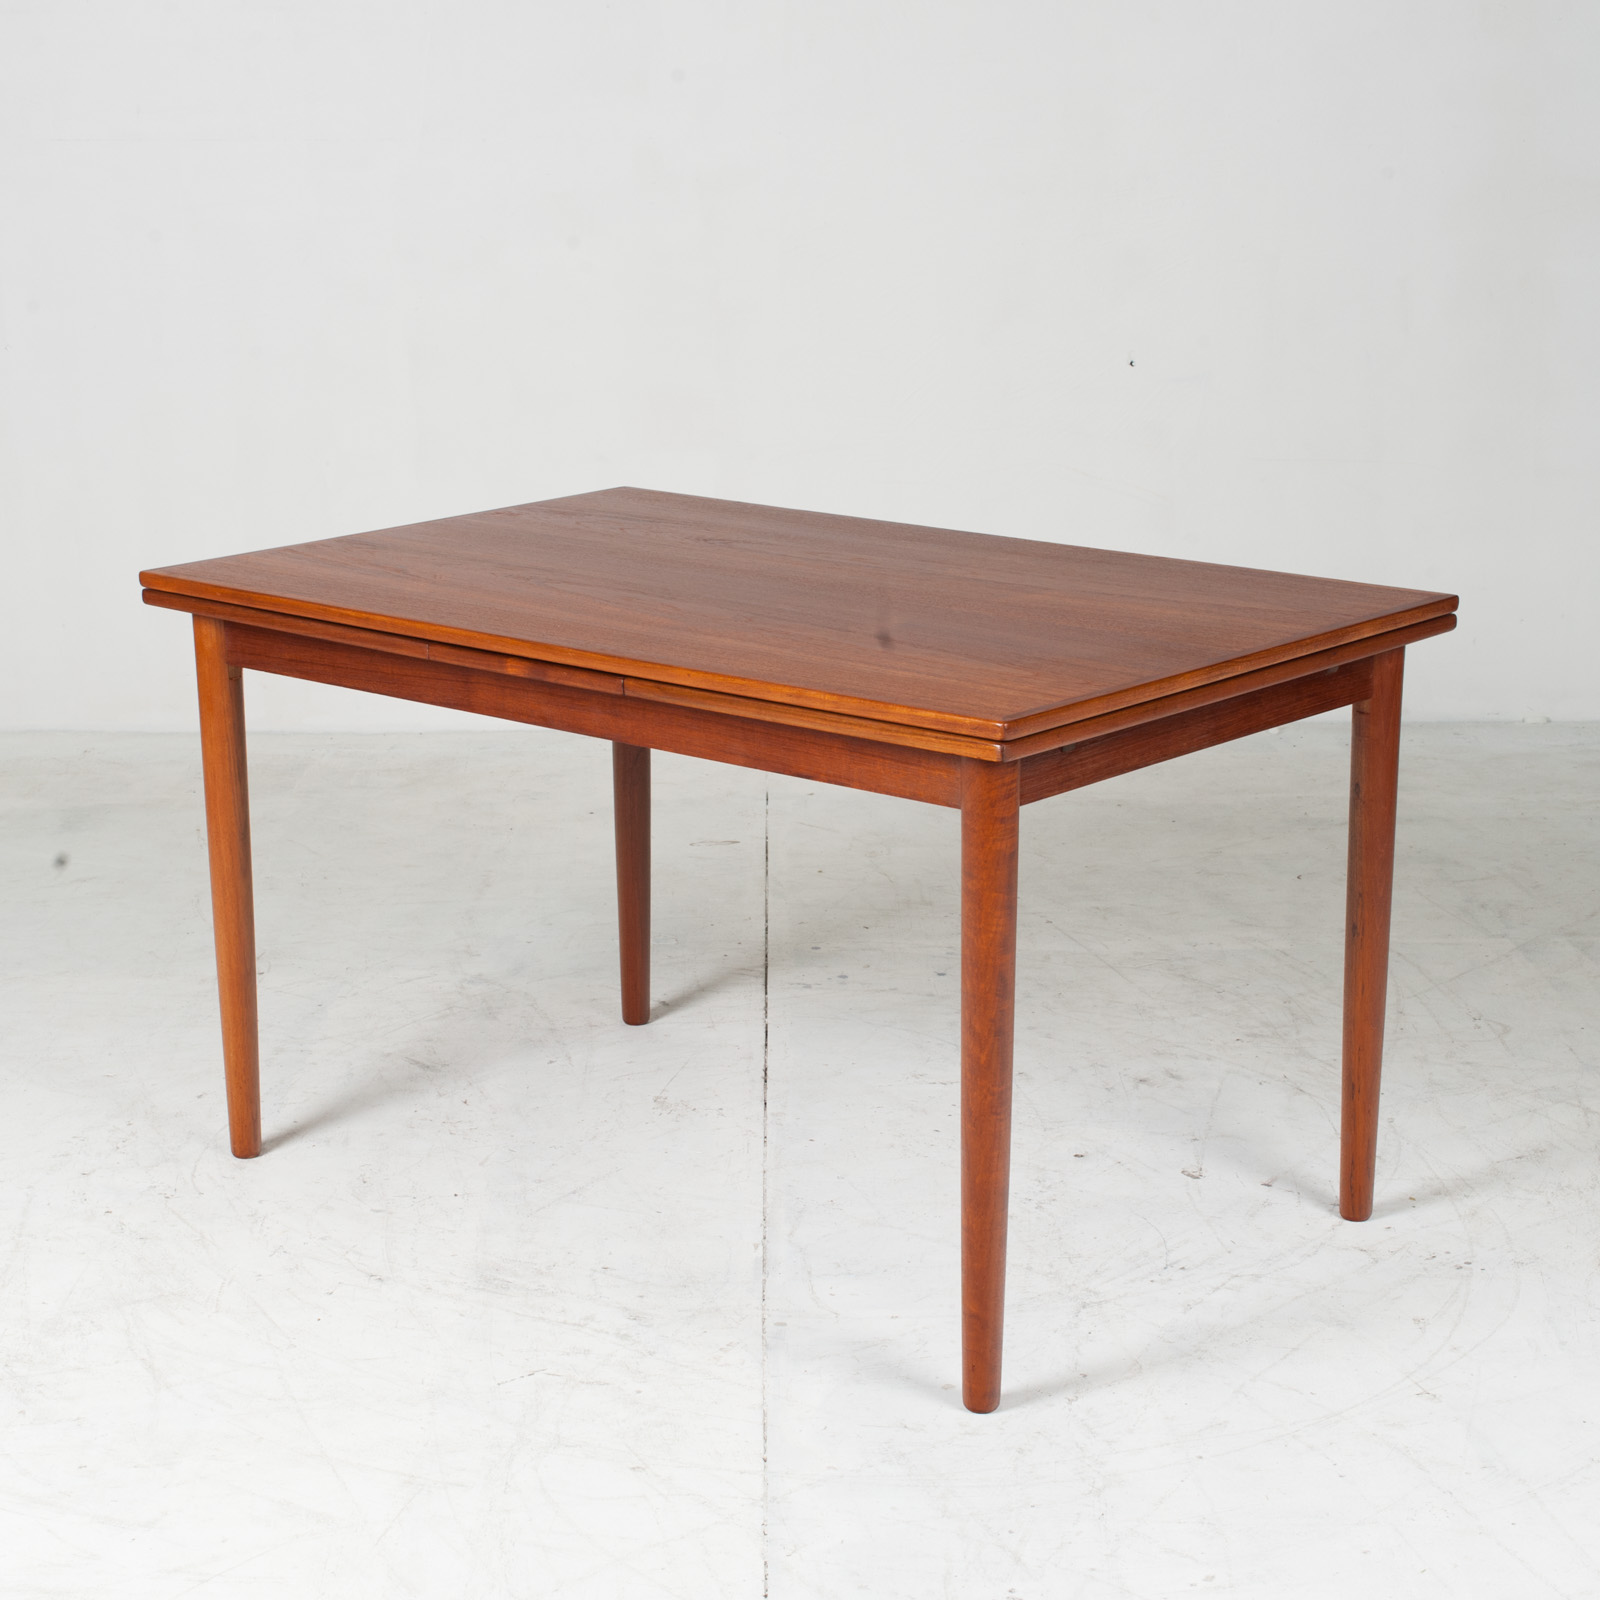 Rectangular Dining Table With Solid Edge In Teak 2